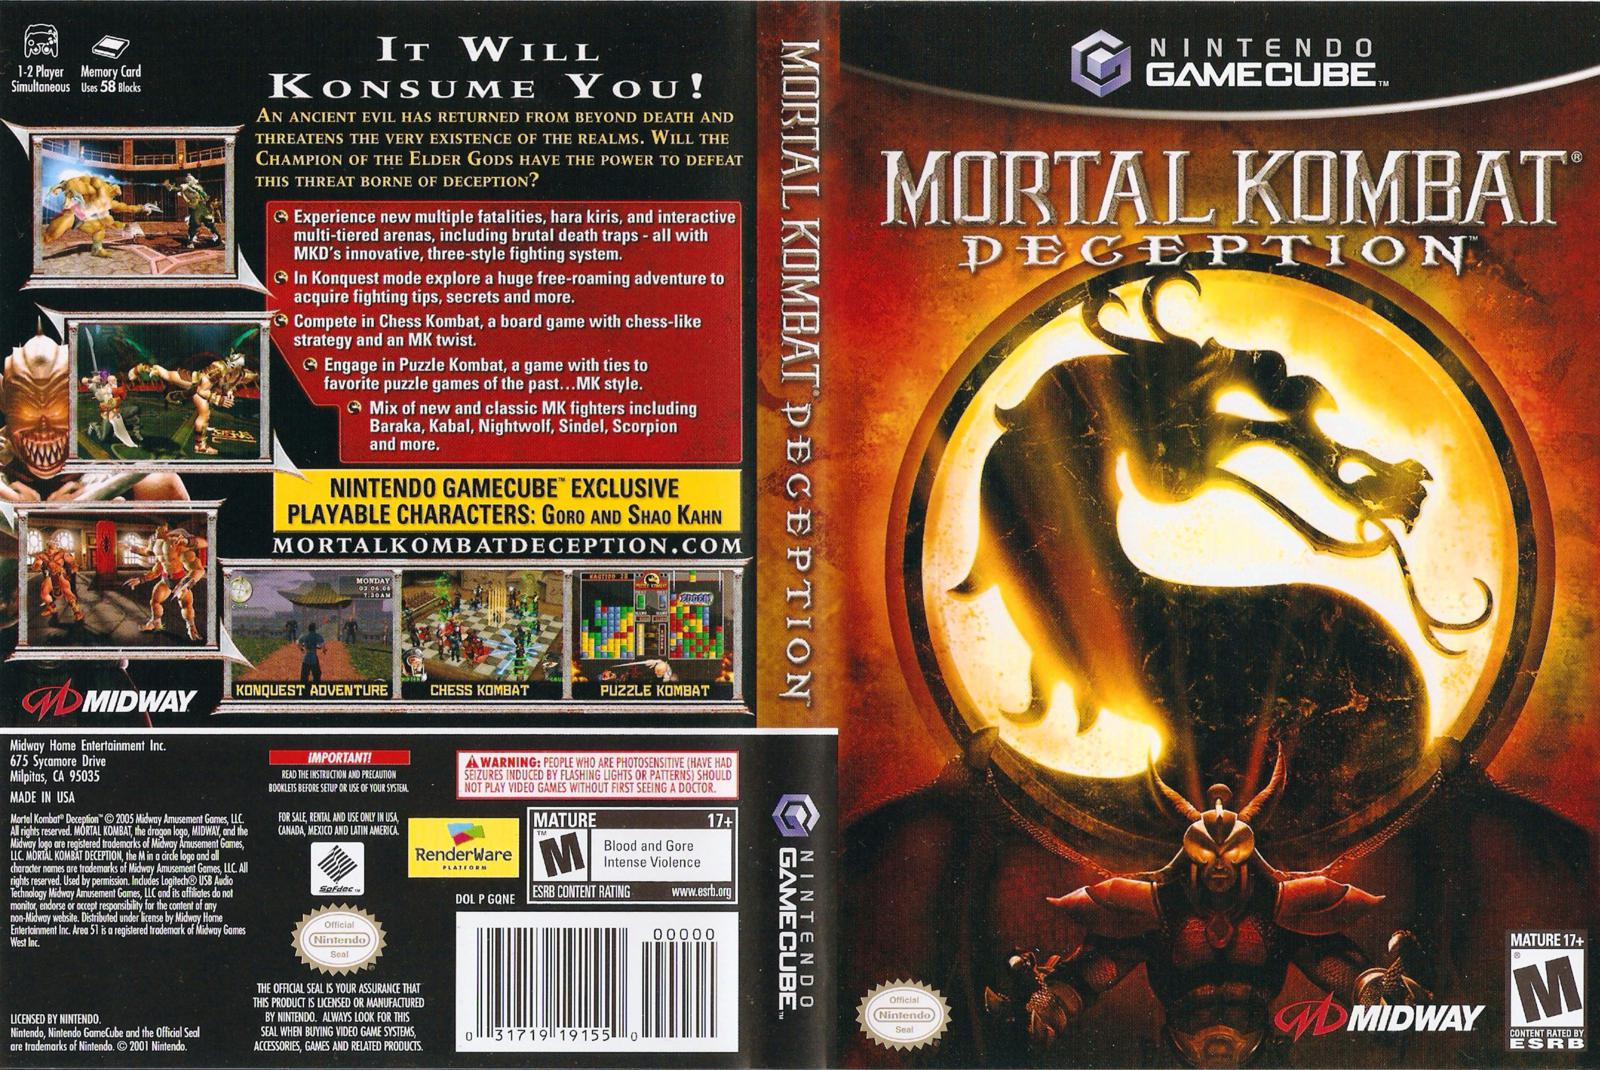 Mortal Kombat Deception Gamecube Cheat Codes